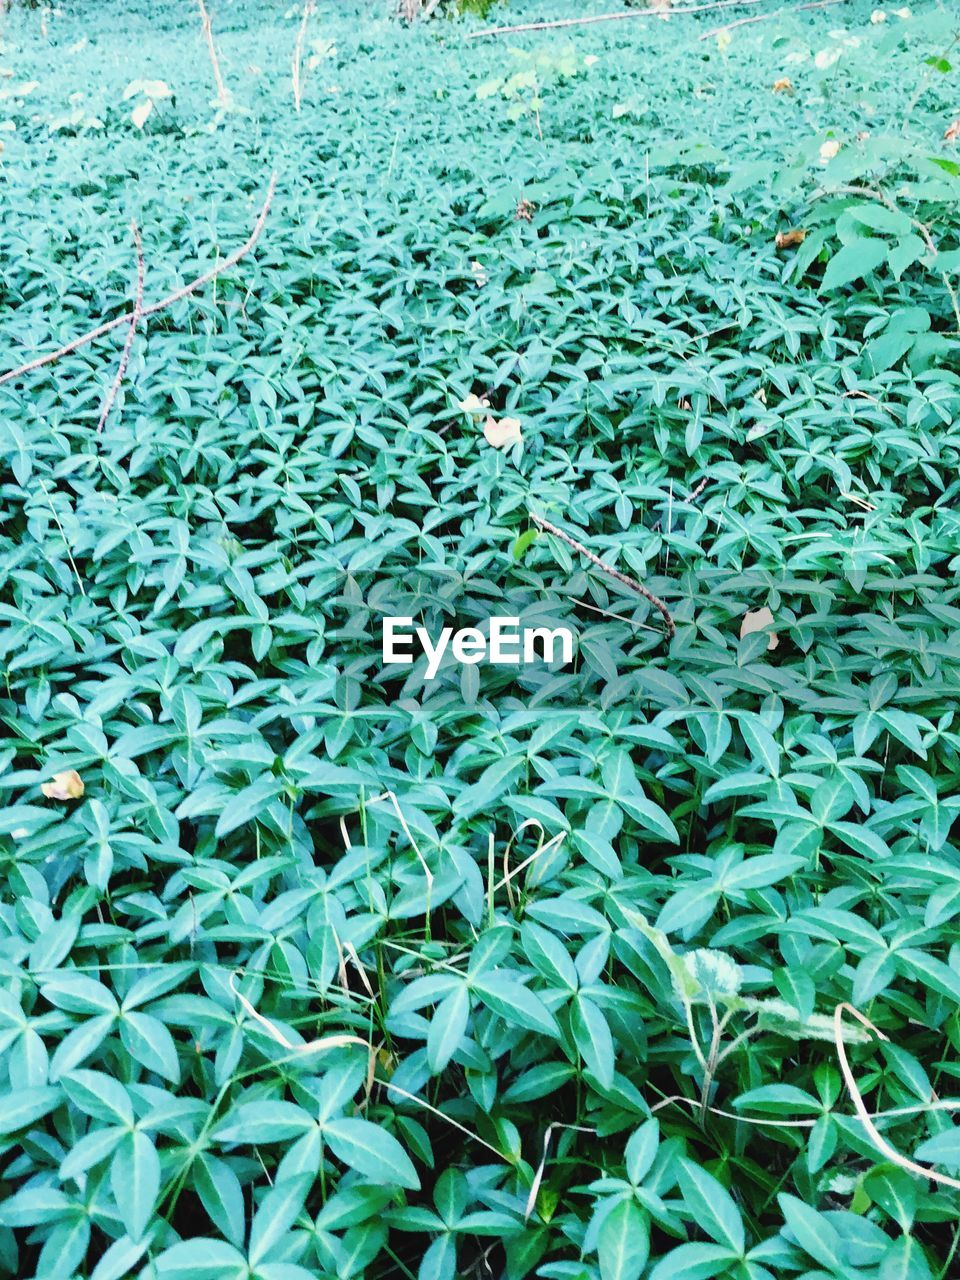 plant, green color, growth, nature, plant part, leaf, high angle view, day, full frame, backgrounds, no people, beauty in nature, land, water, tranquility, field, freshness, abundance, outdoors, leaves